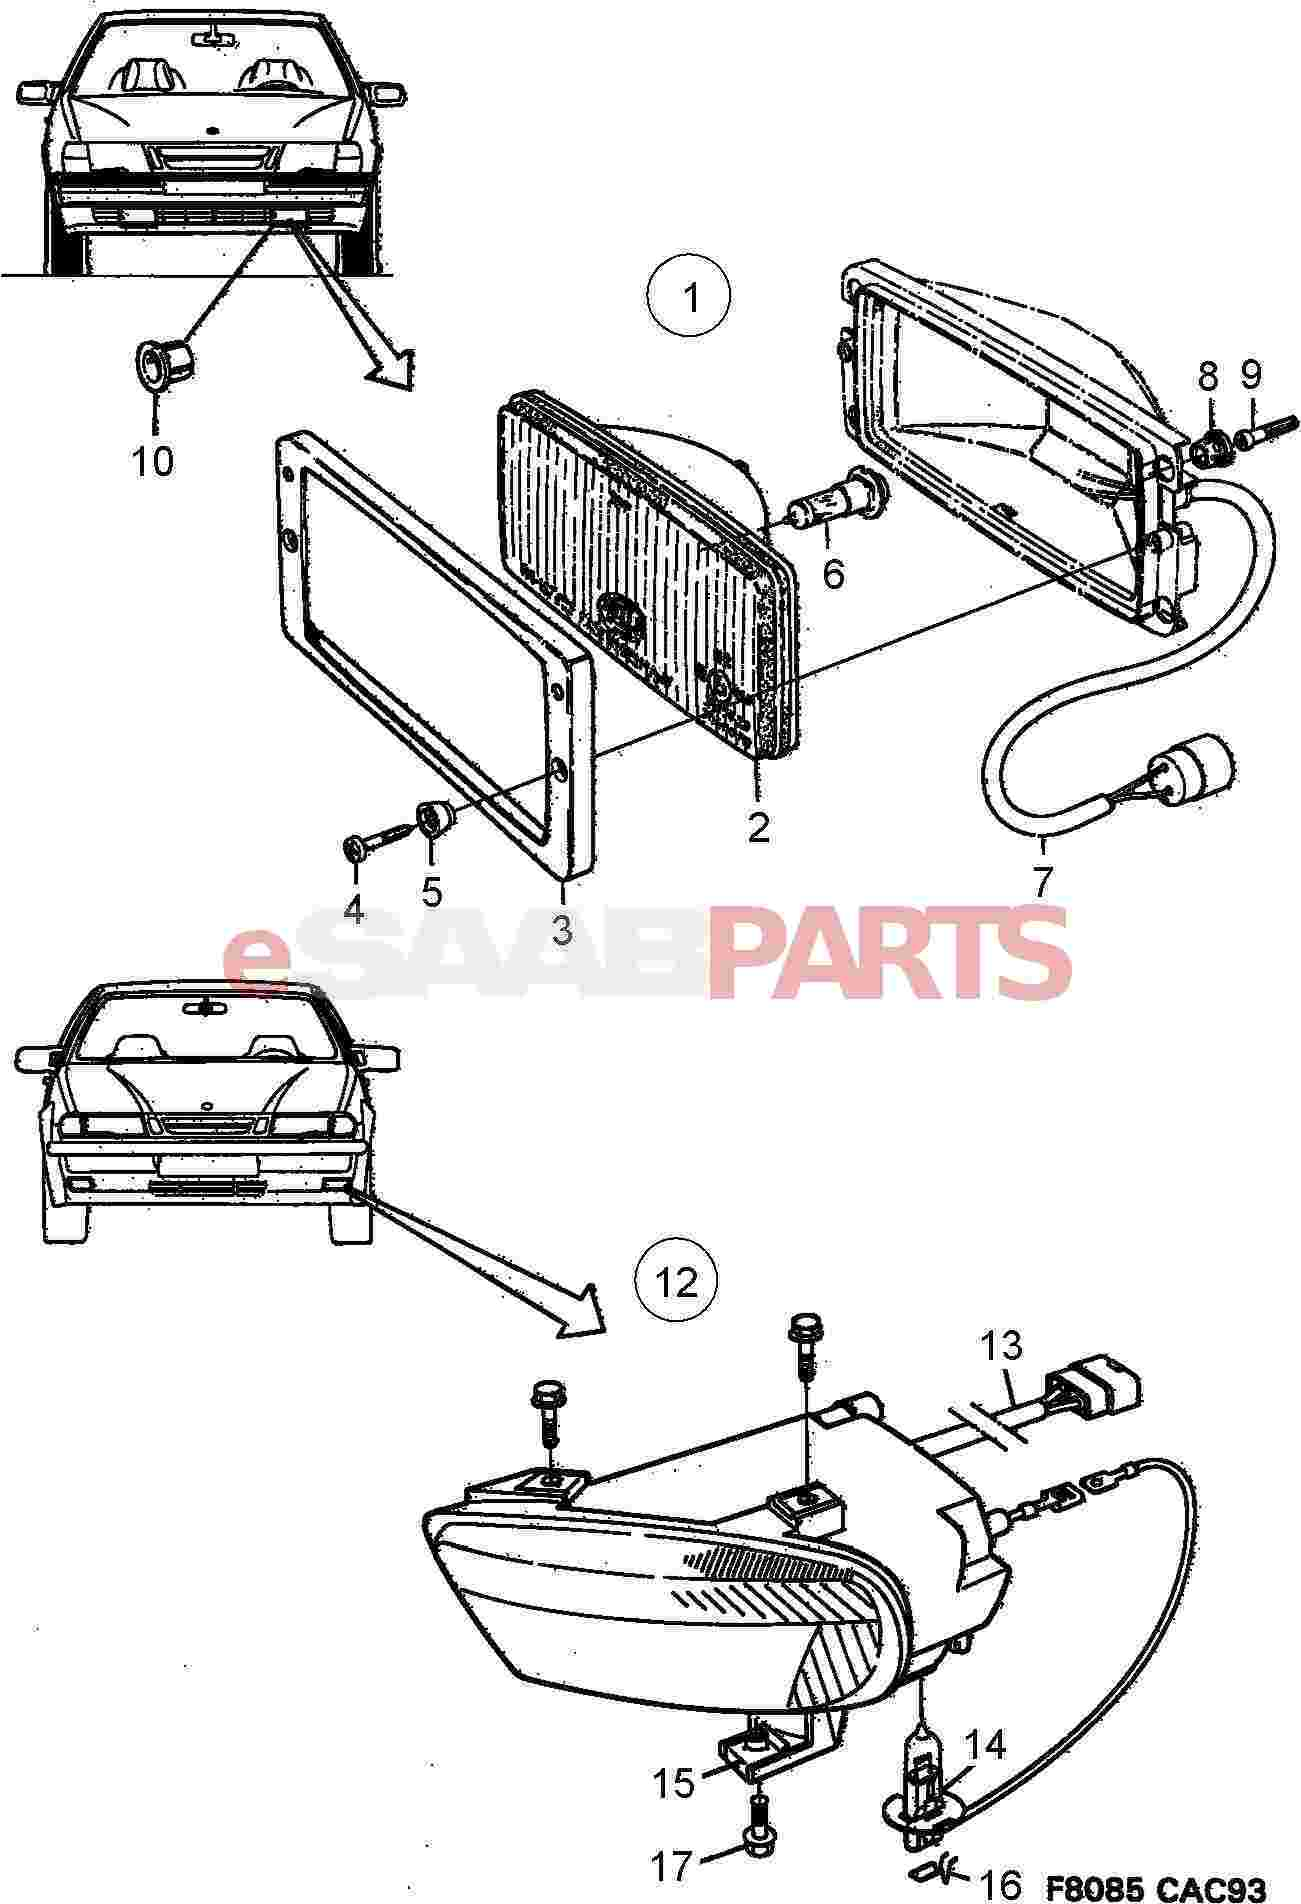 saab 9 3 windshield washer diagram